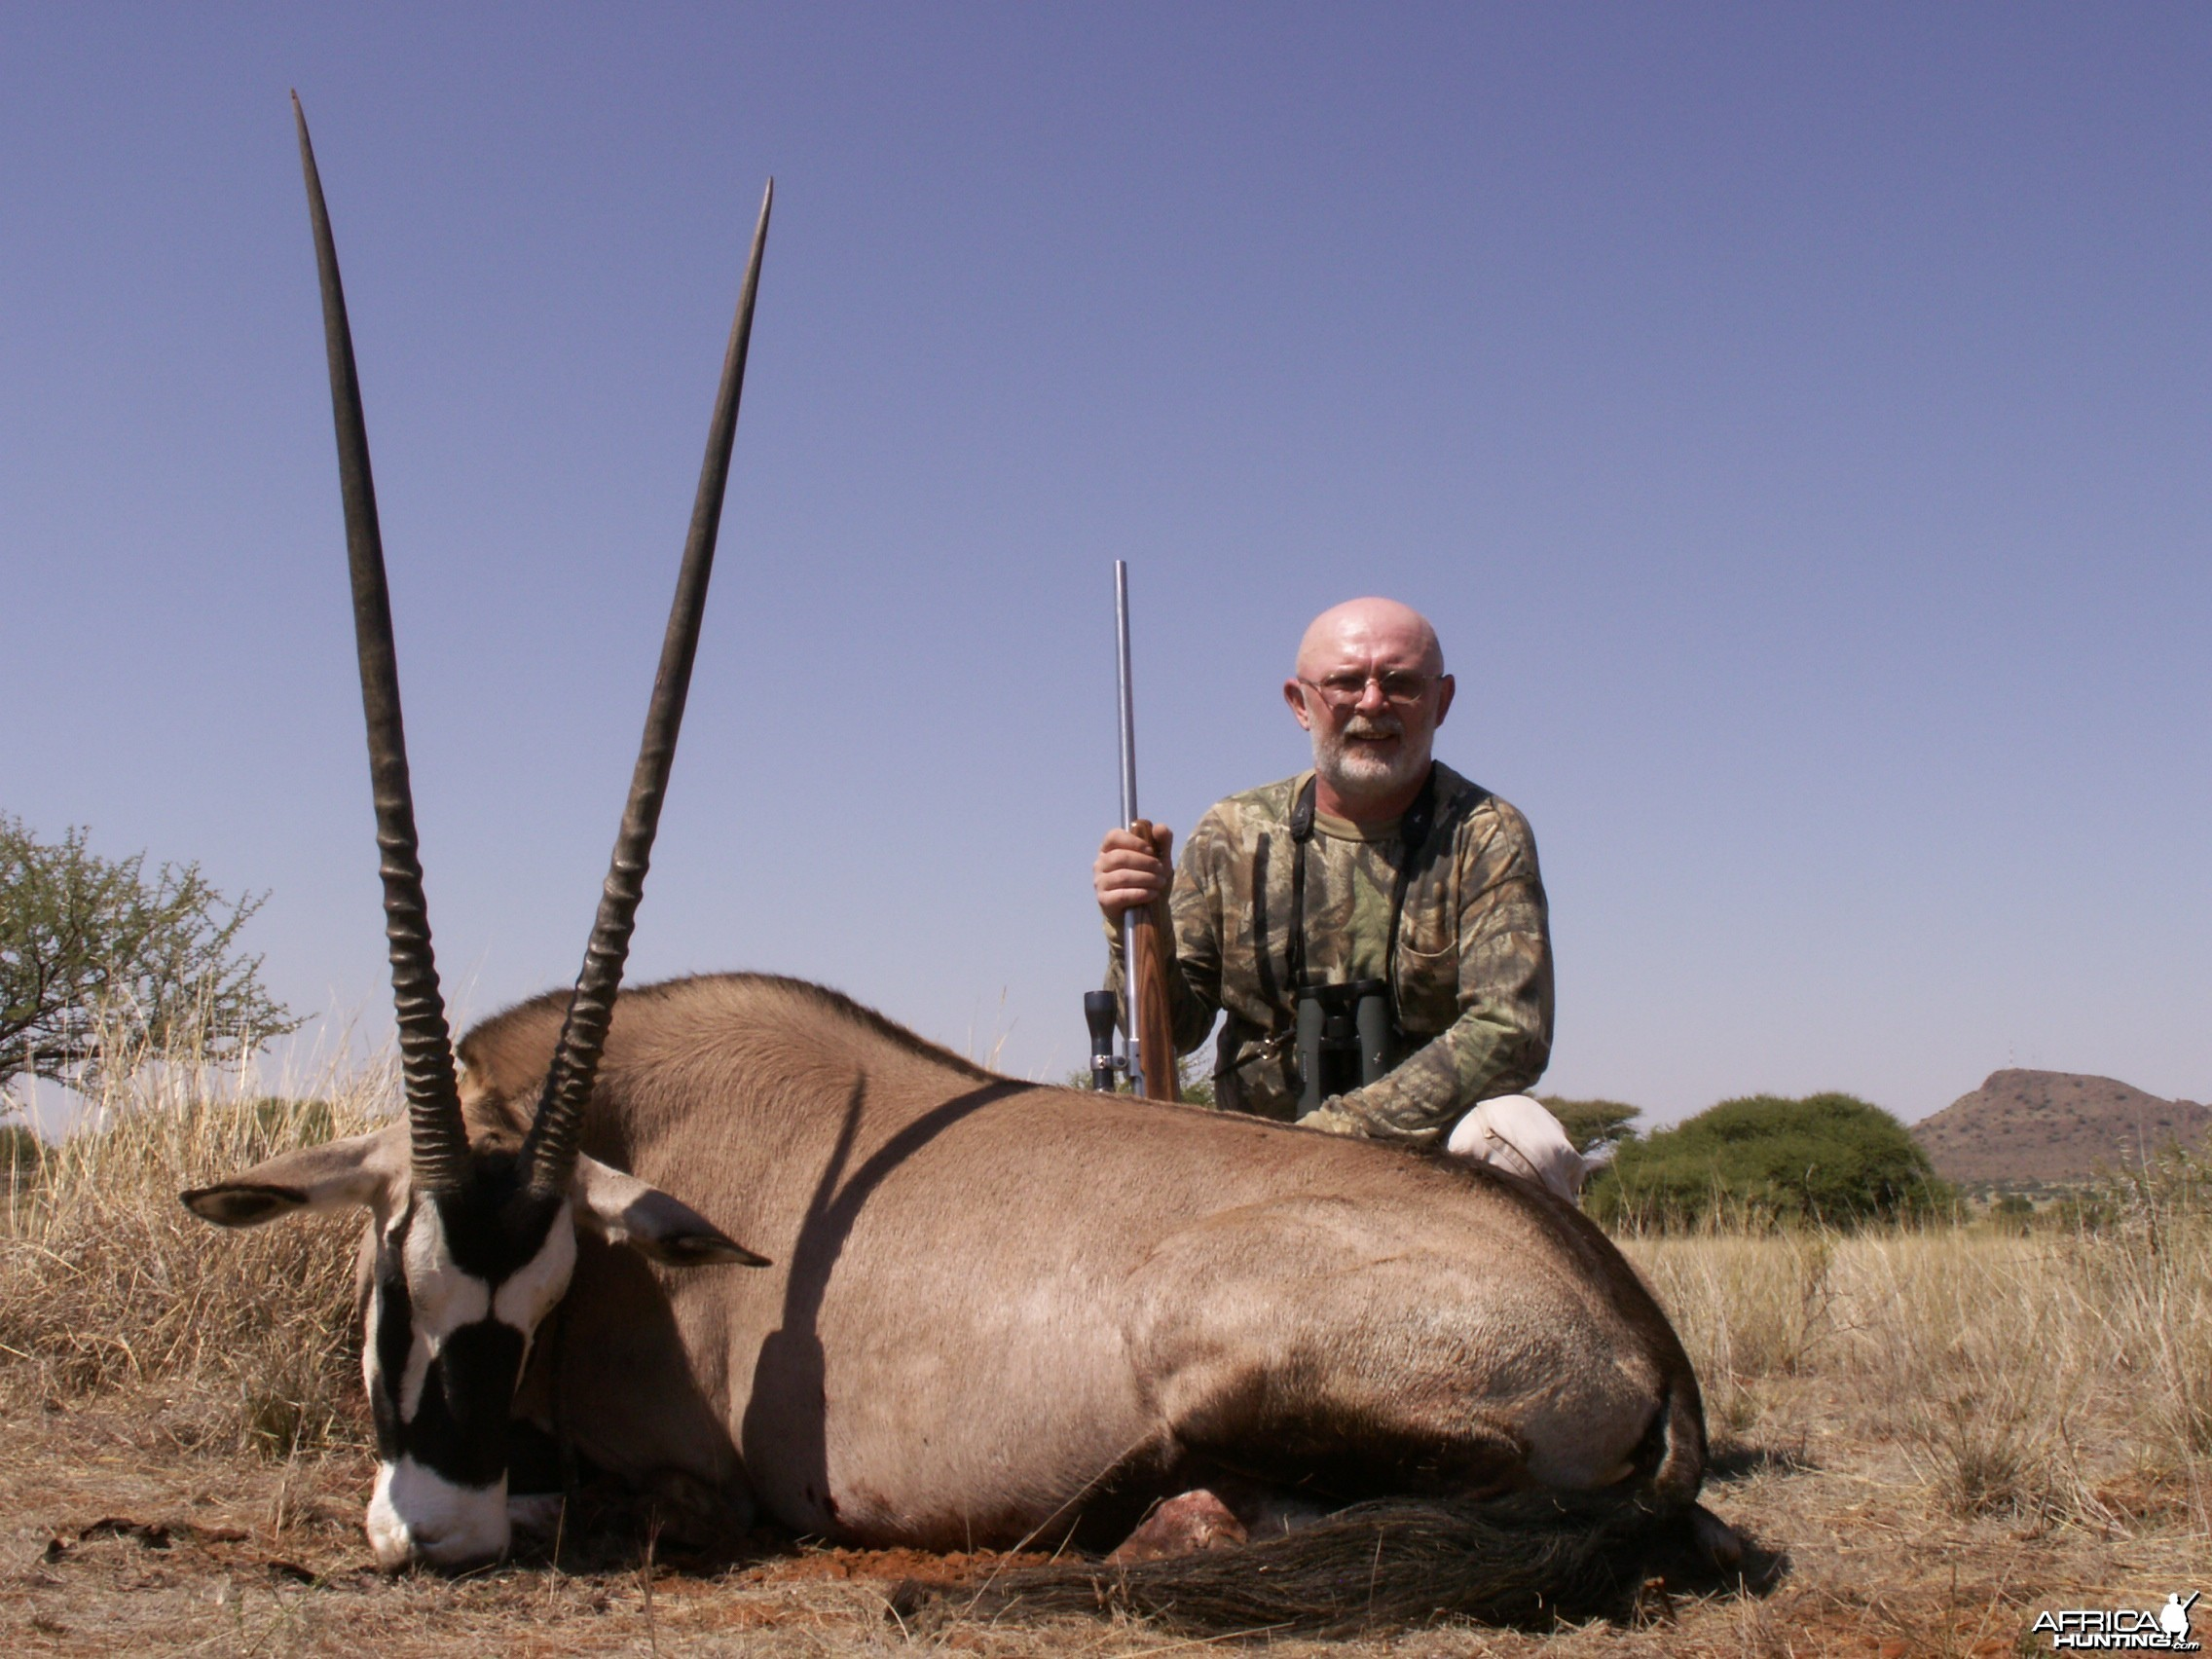 Hunting Gemsbuck with Wintershoek Johnny Vivier Safaris in SA